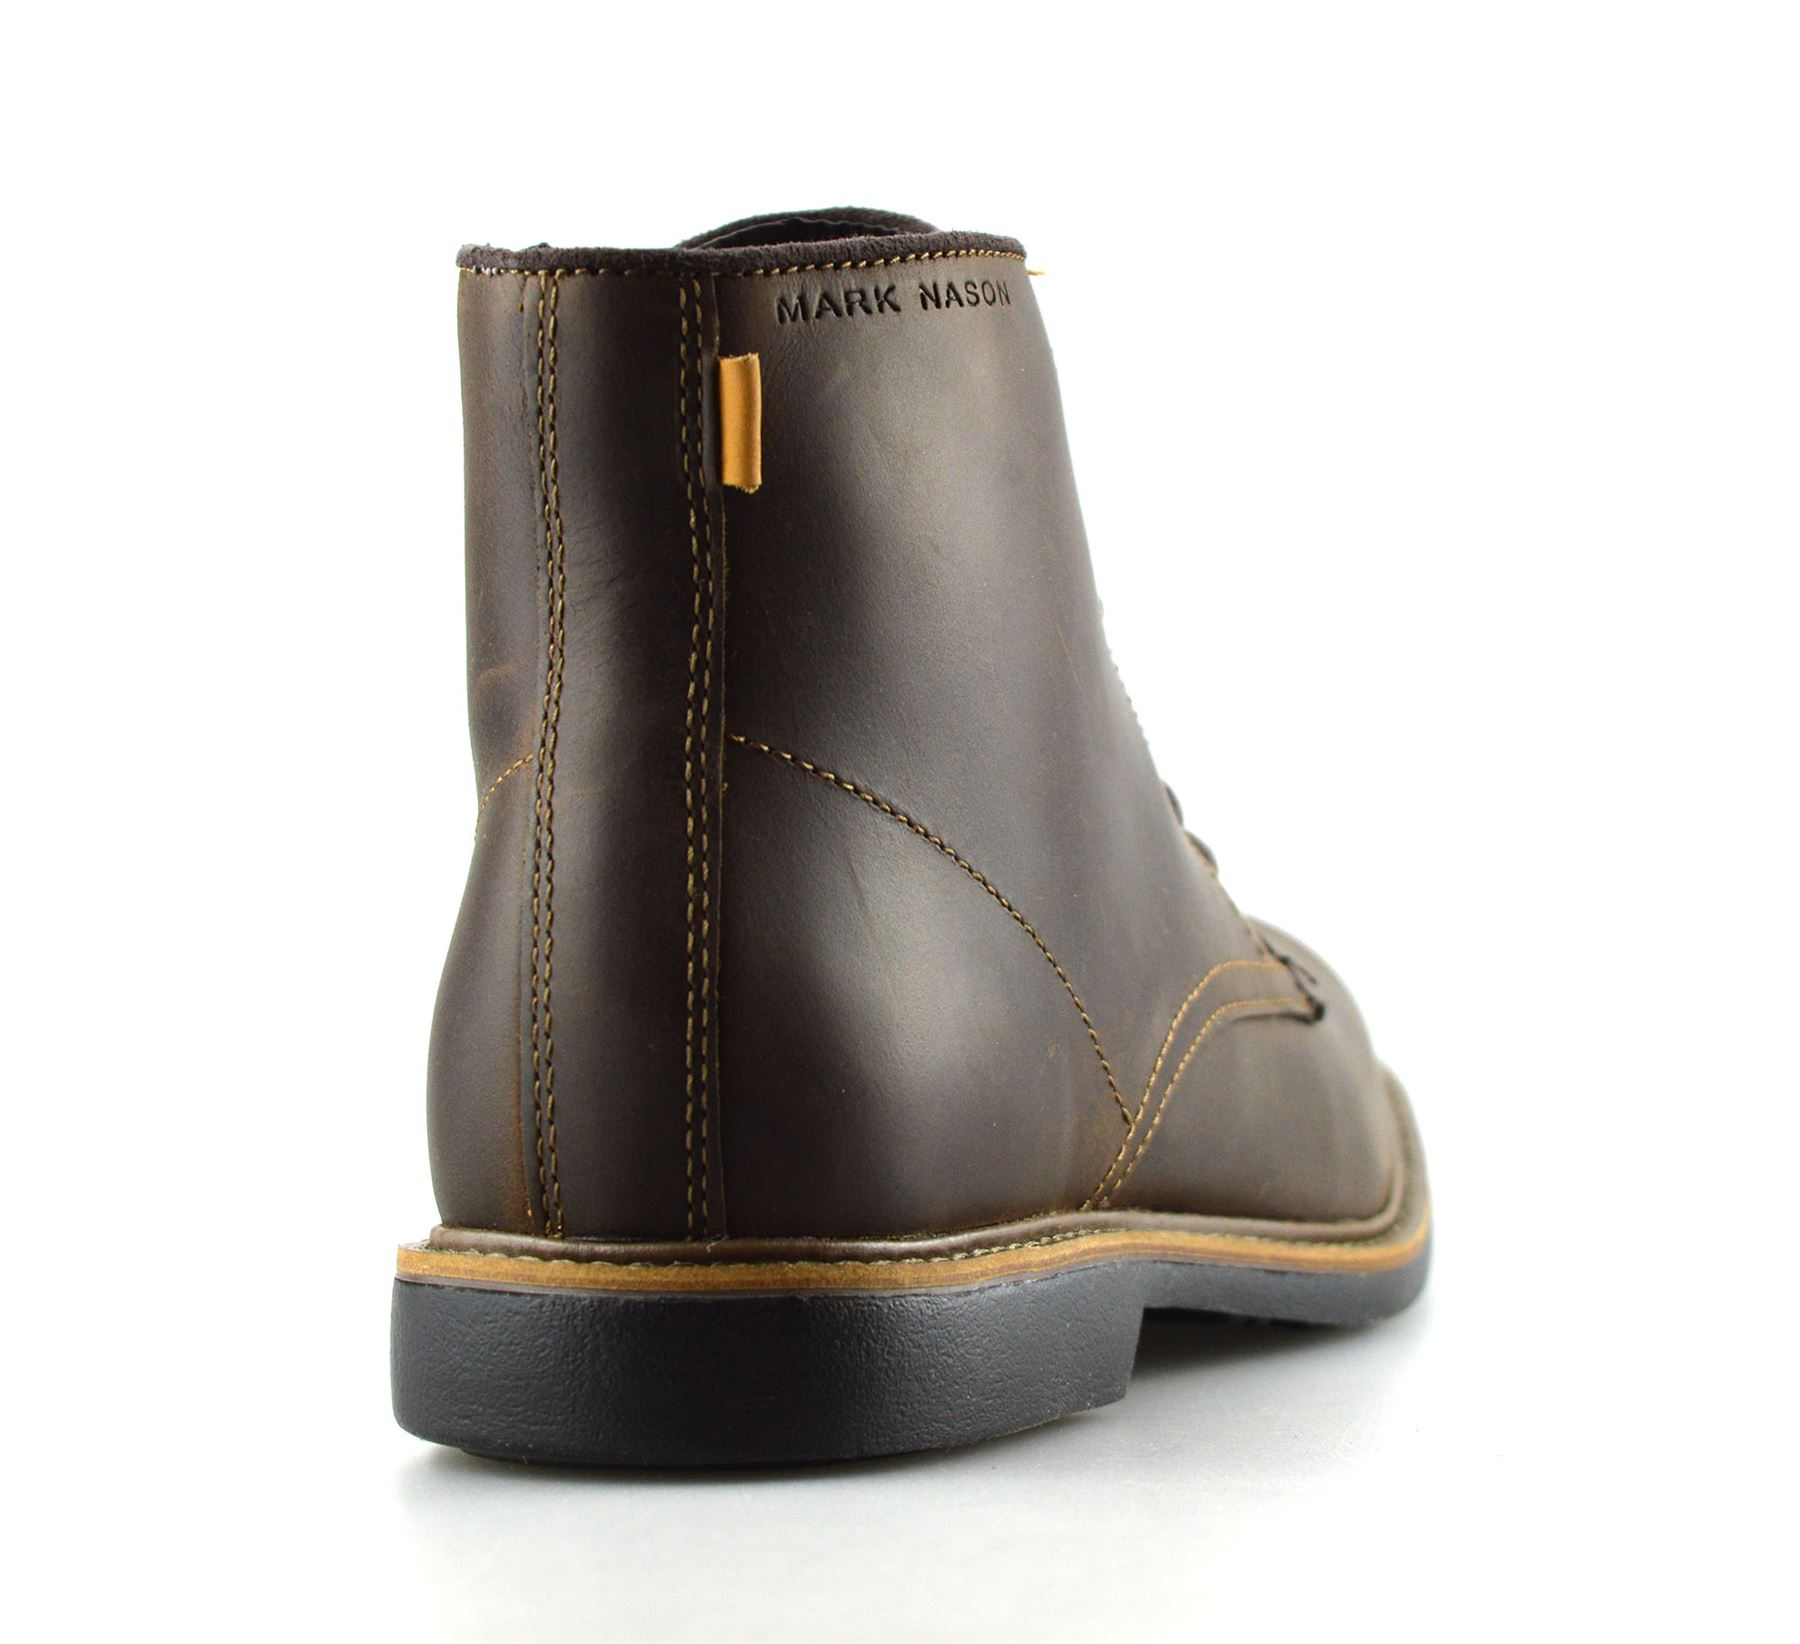 Mens Boots. Boots offer a level of comfort and reassurance which you do not get with other shoes. As we source from the leading brands worldwide, you know you are getting quality made boots .